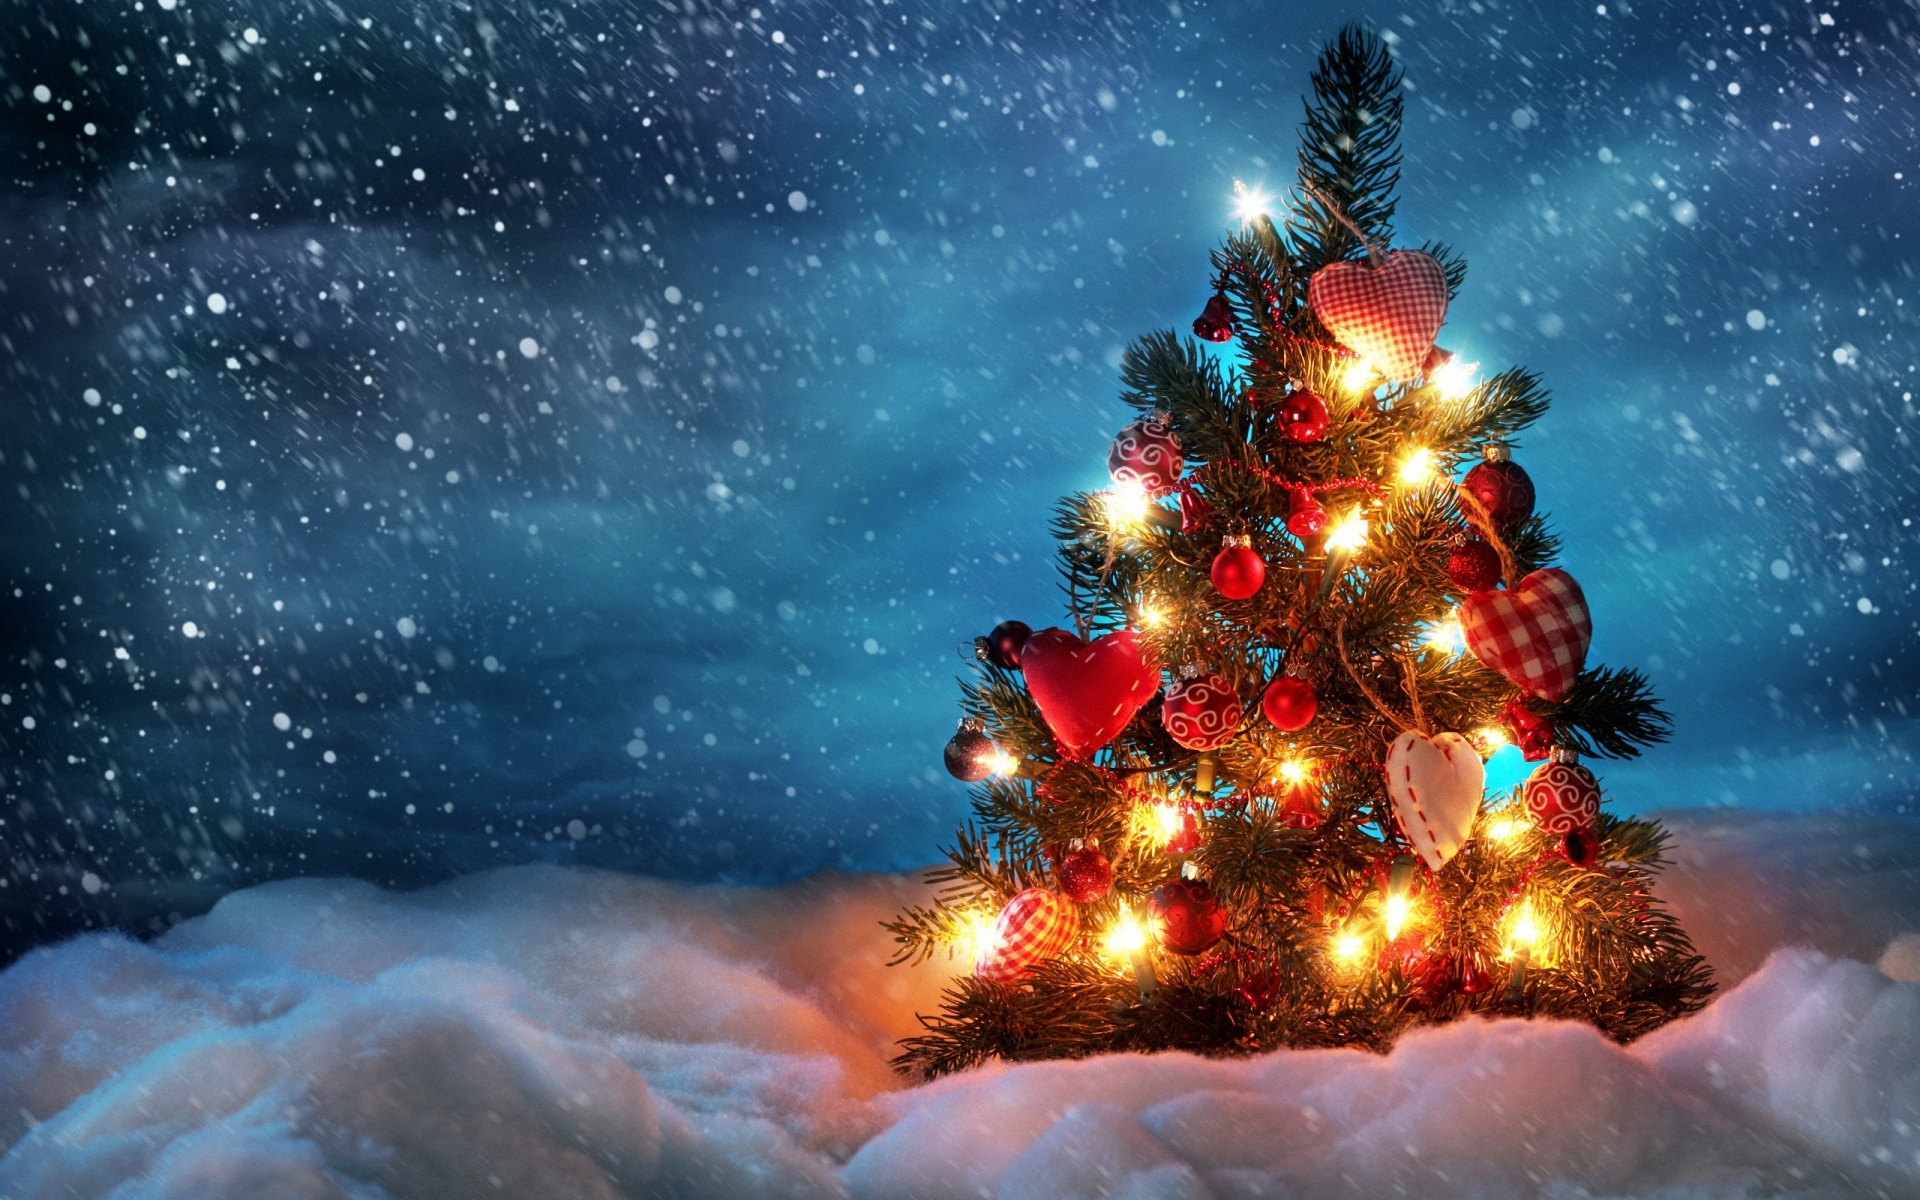 Beautiful christmas tree wallpaper 2